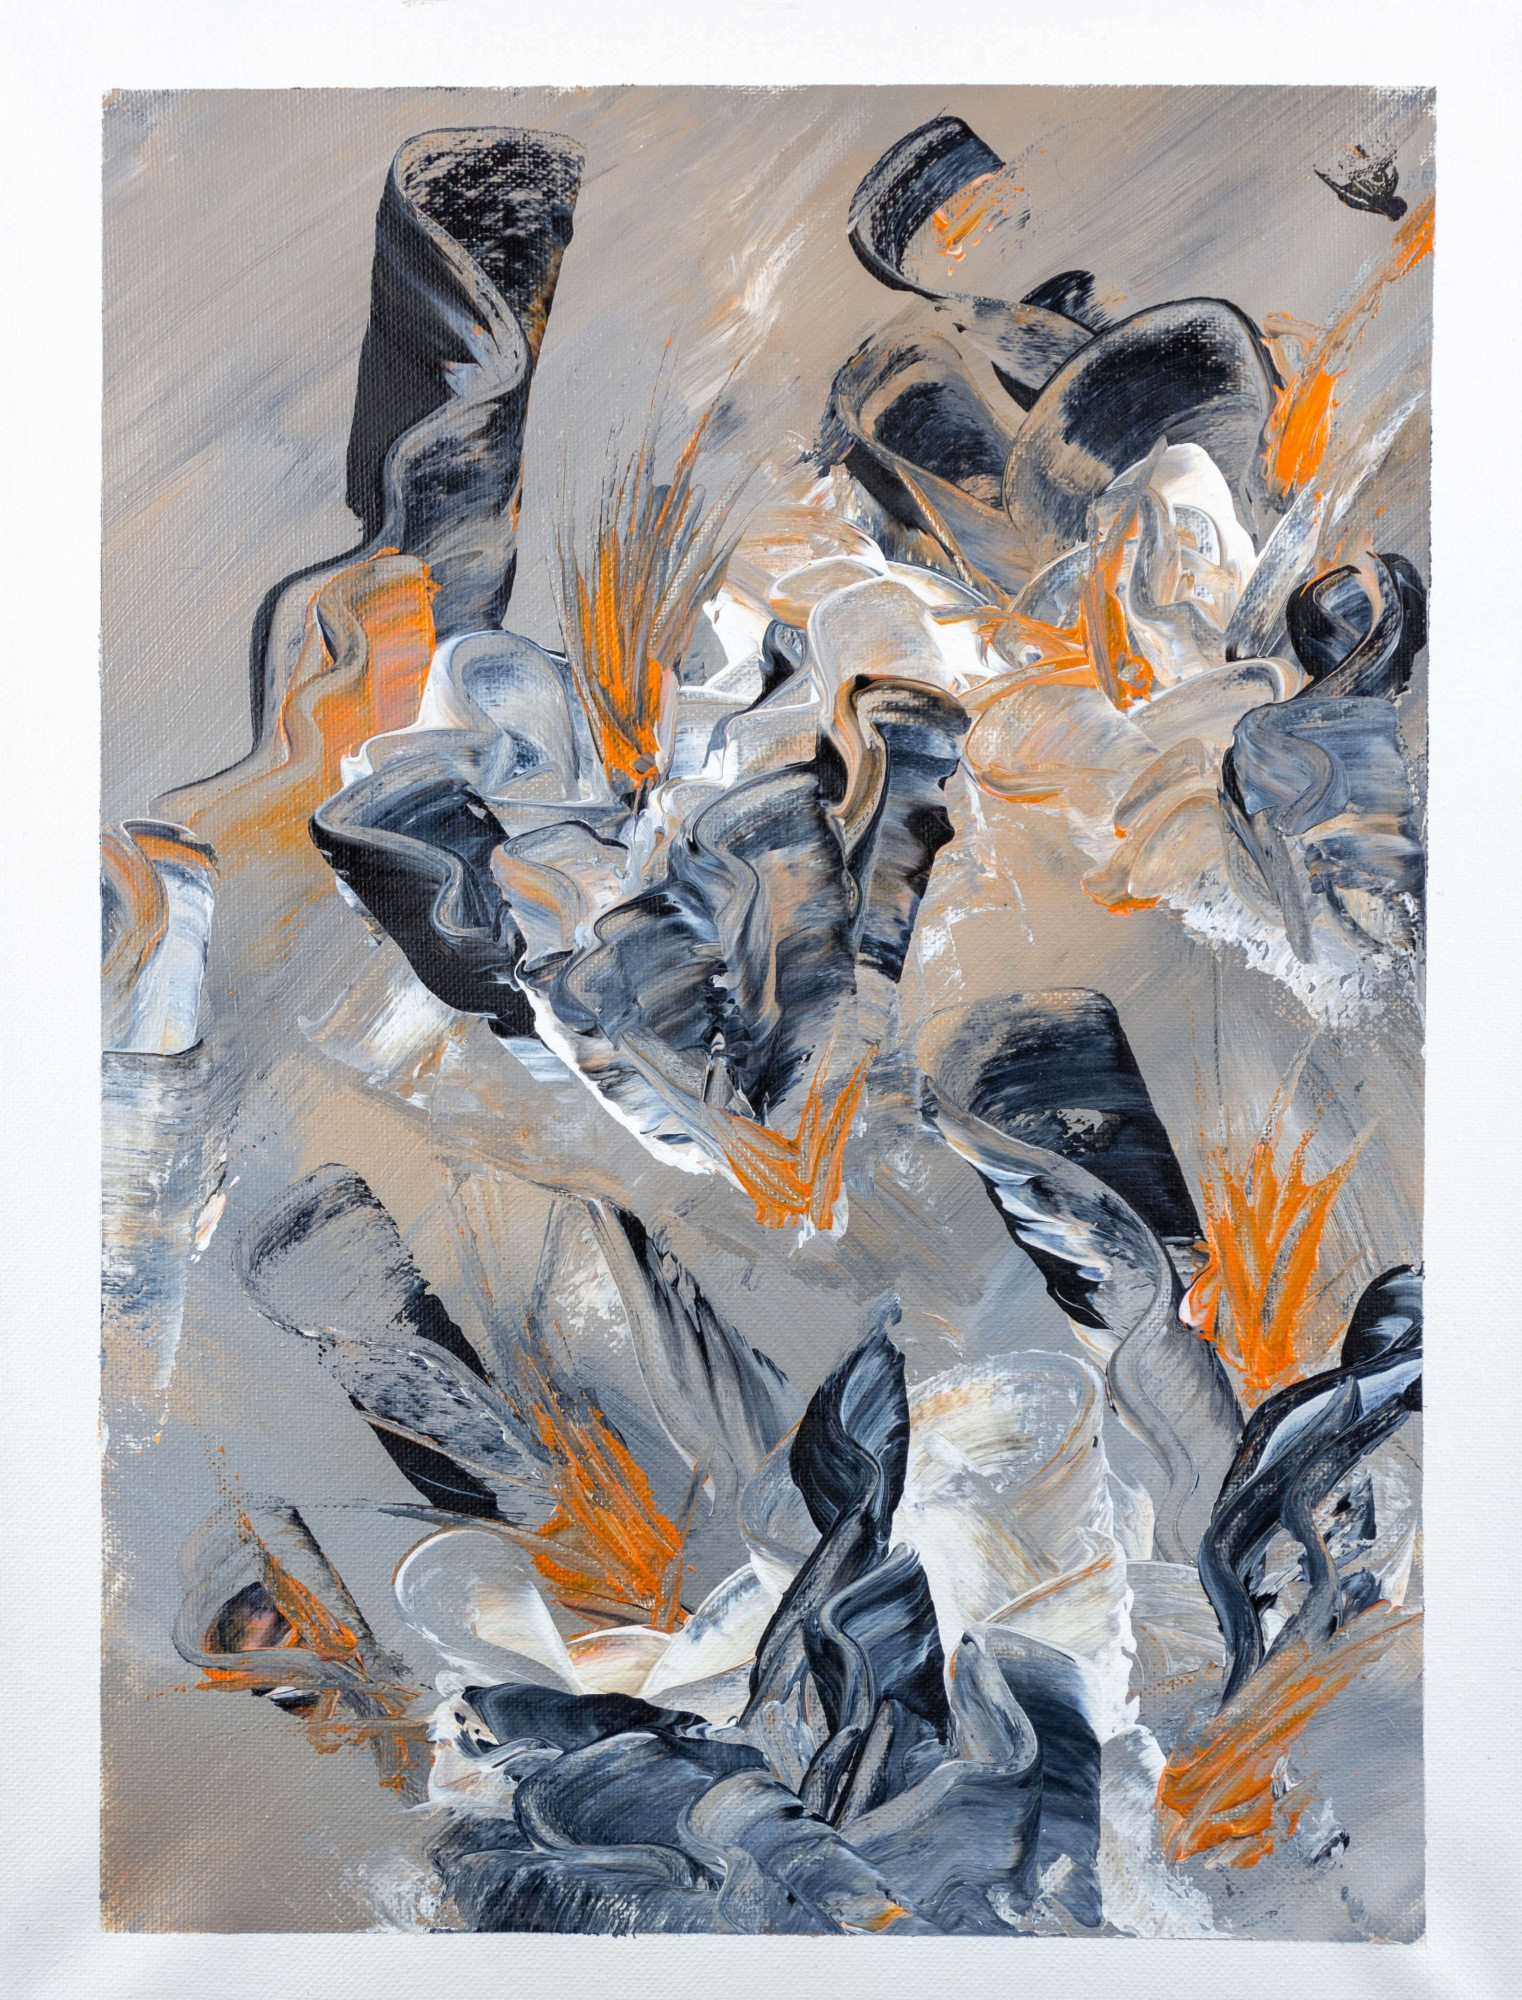 Flower party - abstract art - black - orange - white - size 16in x 12in